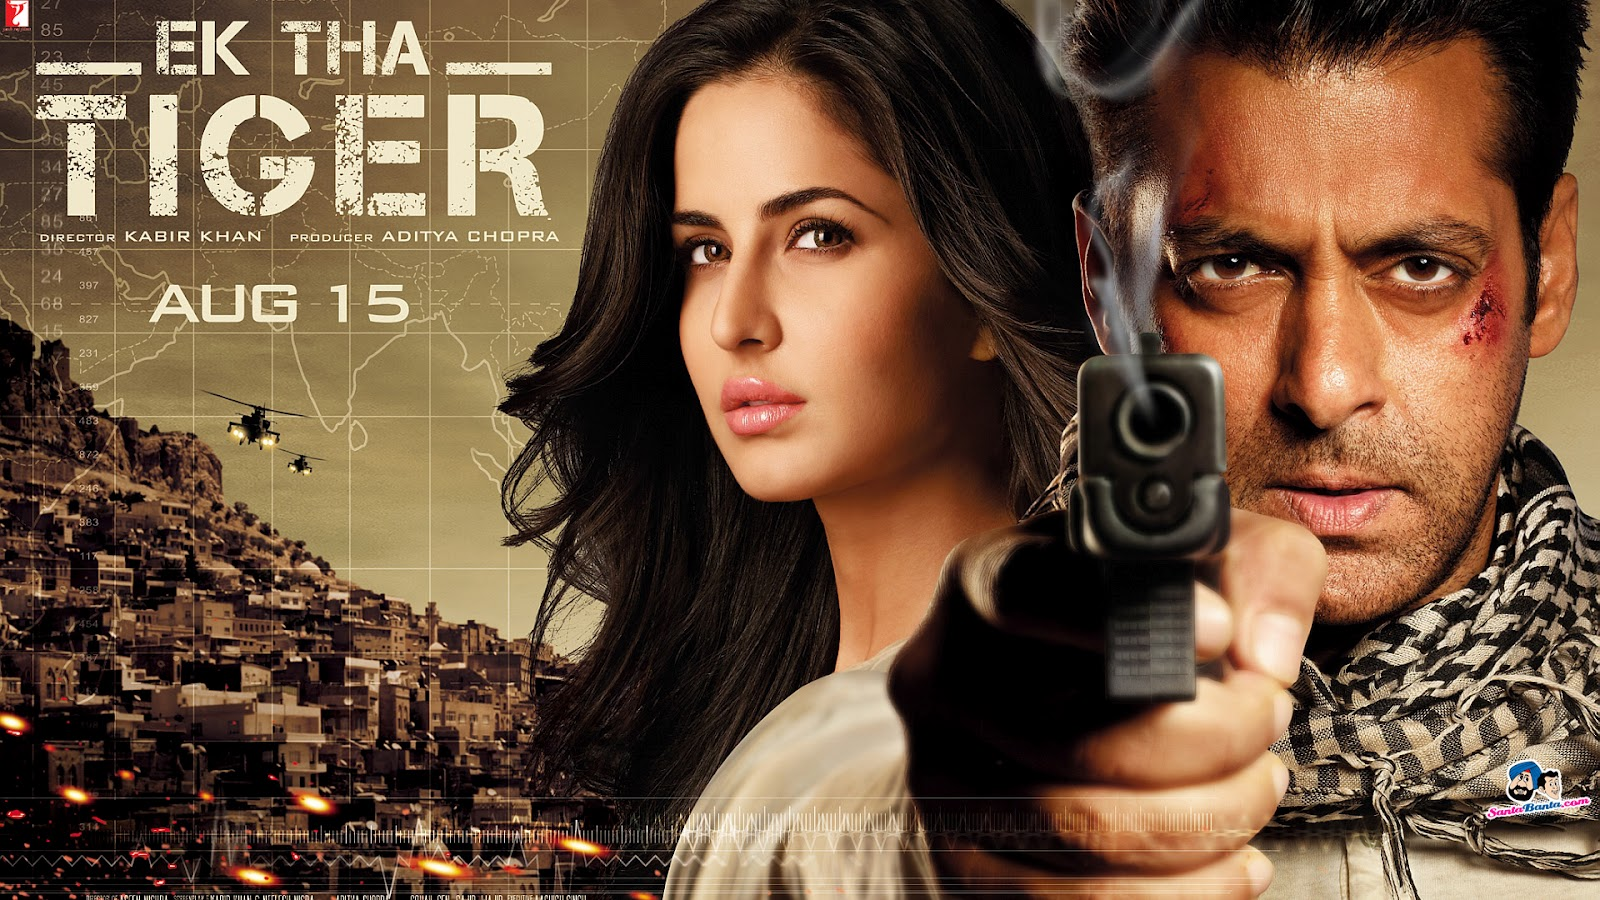 Hindi Movie Online Watch | Ek Tha Tiger (2012) Full Movie Watch Online